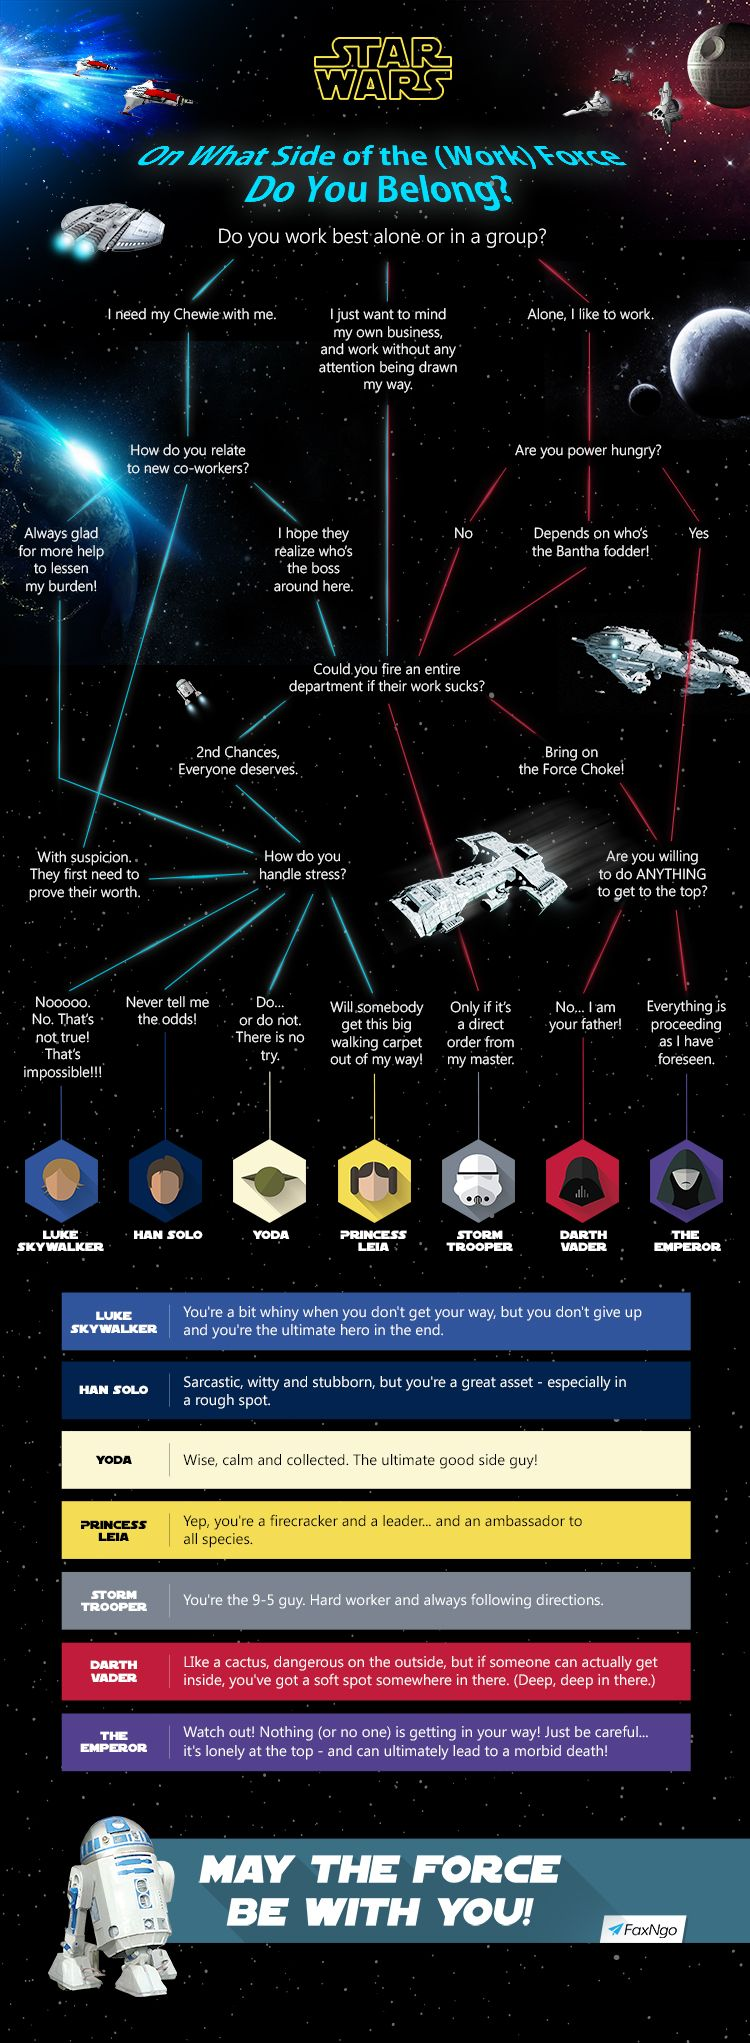 Star Wars On What Side of the (Work) Force Do You Belong? #infographic